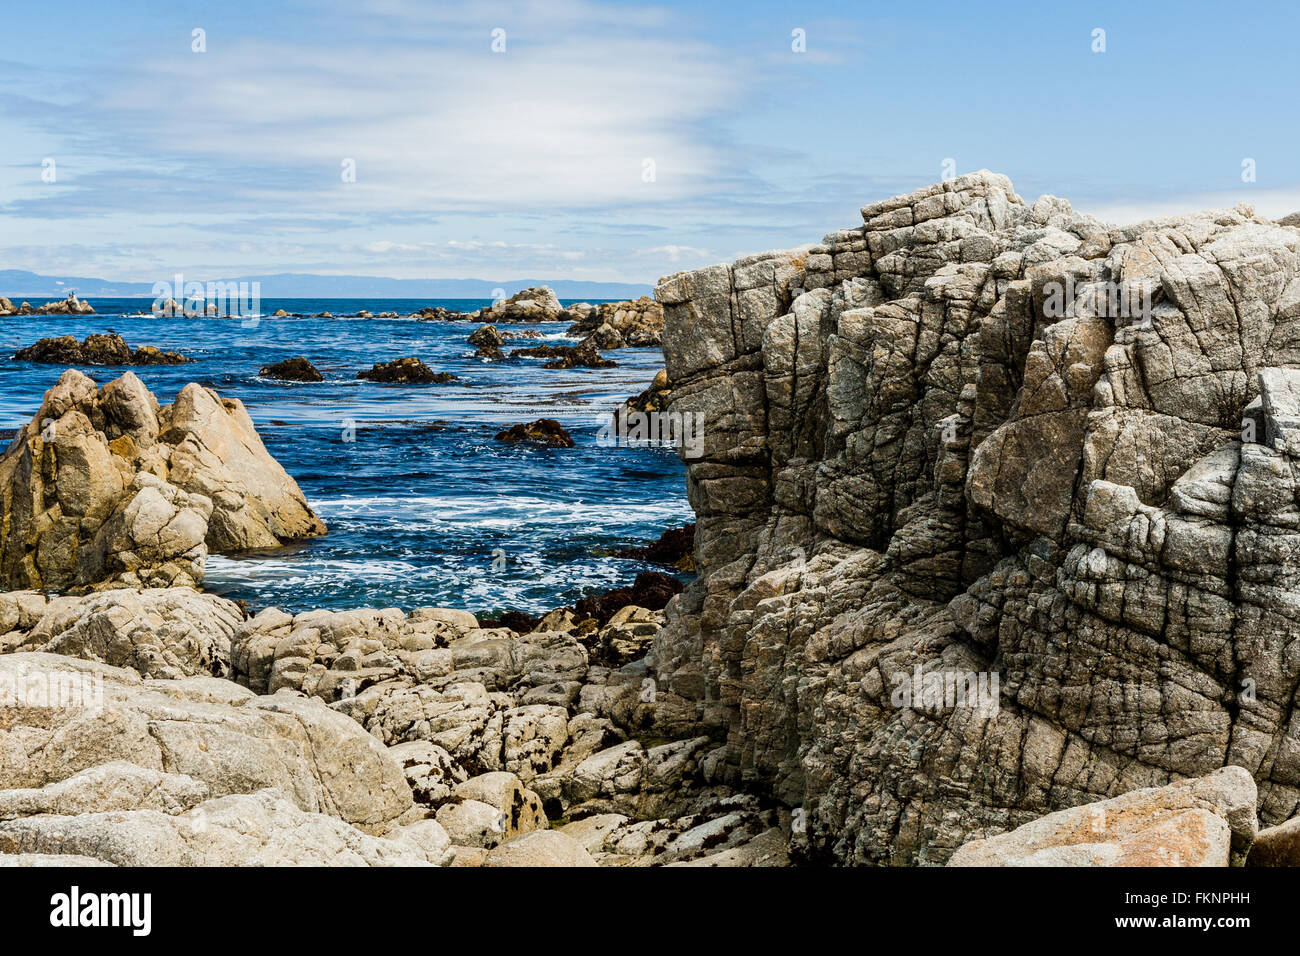 Between Bird Rock and Point Joe, 17 Mile Drive, California, USA - July 1, 2012: The 17 Mile Drive is a scenic road - Stock Image